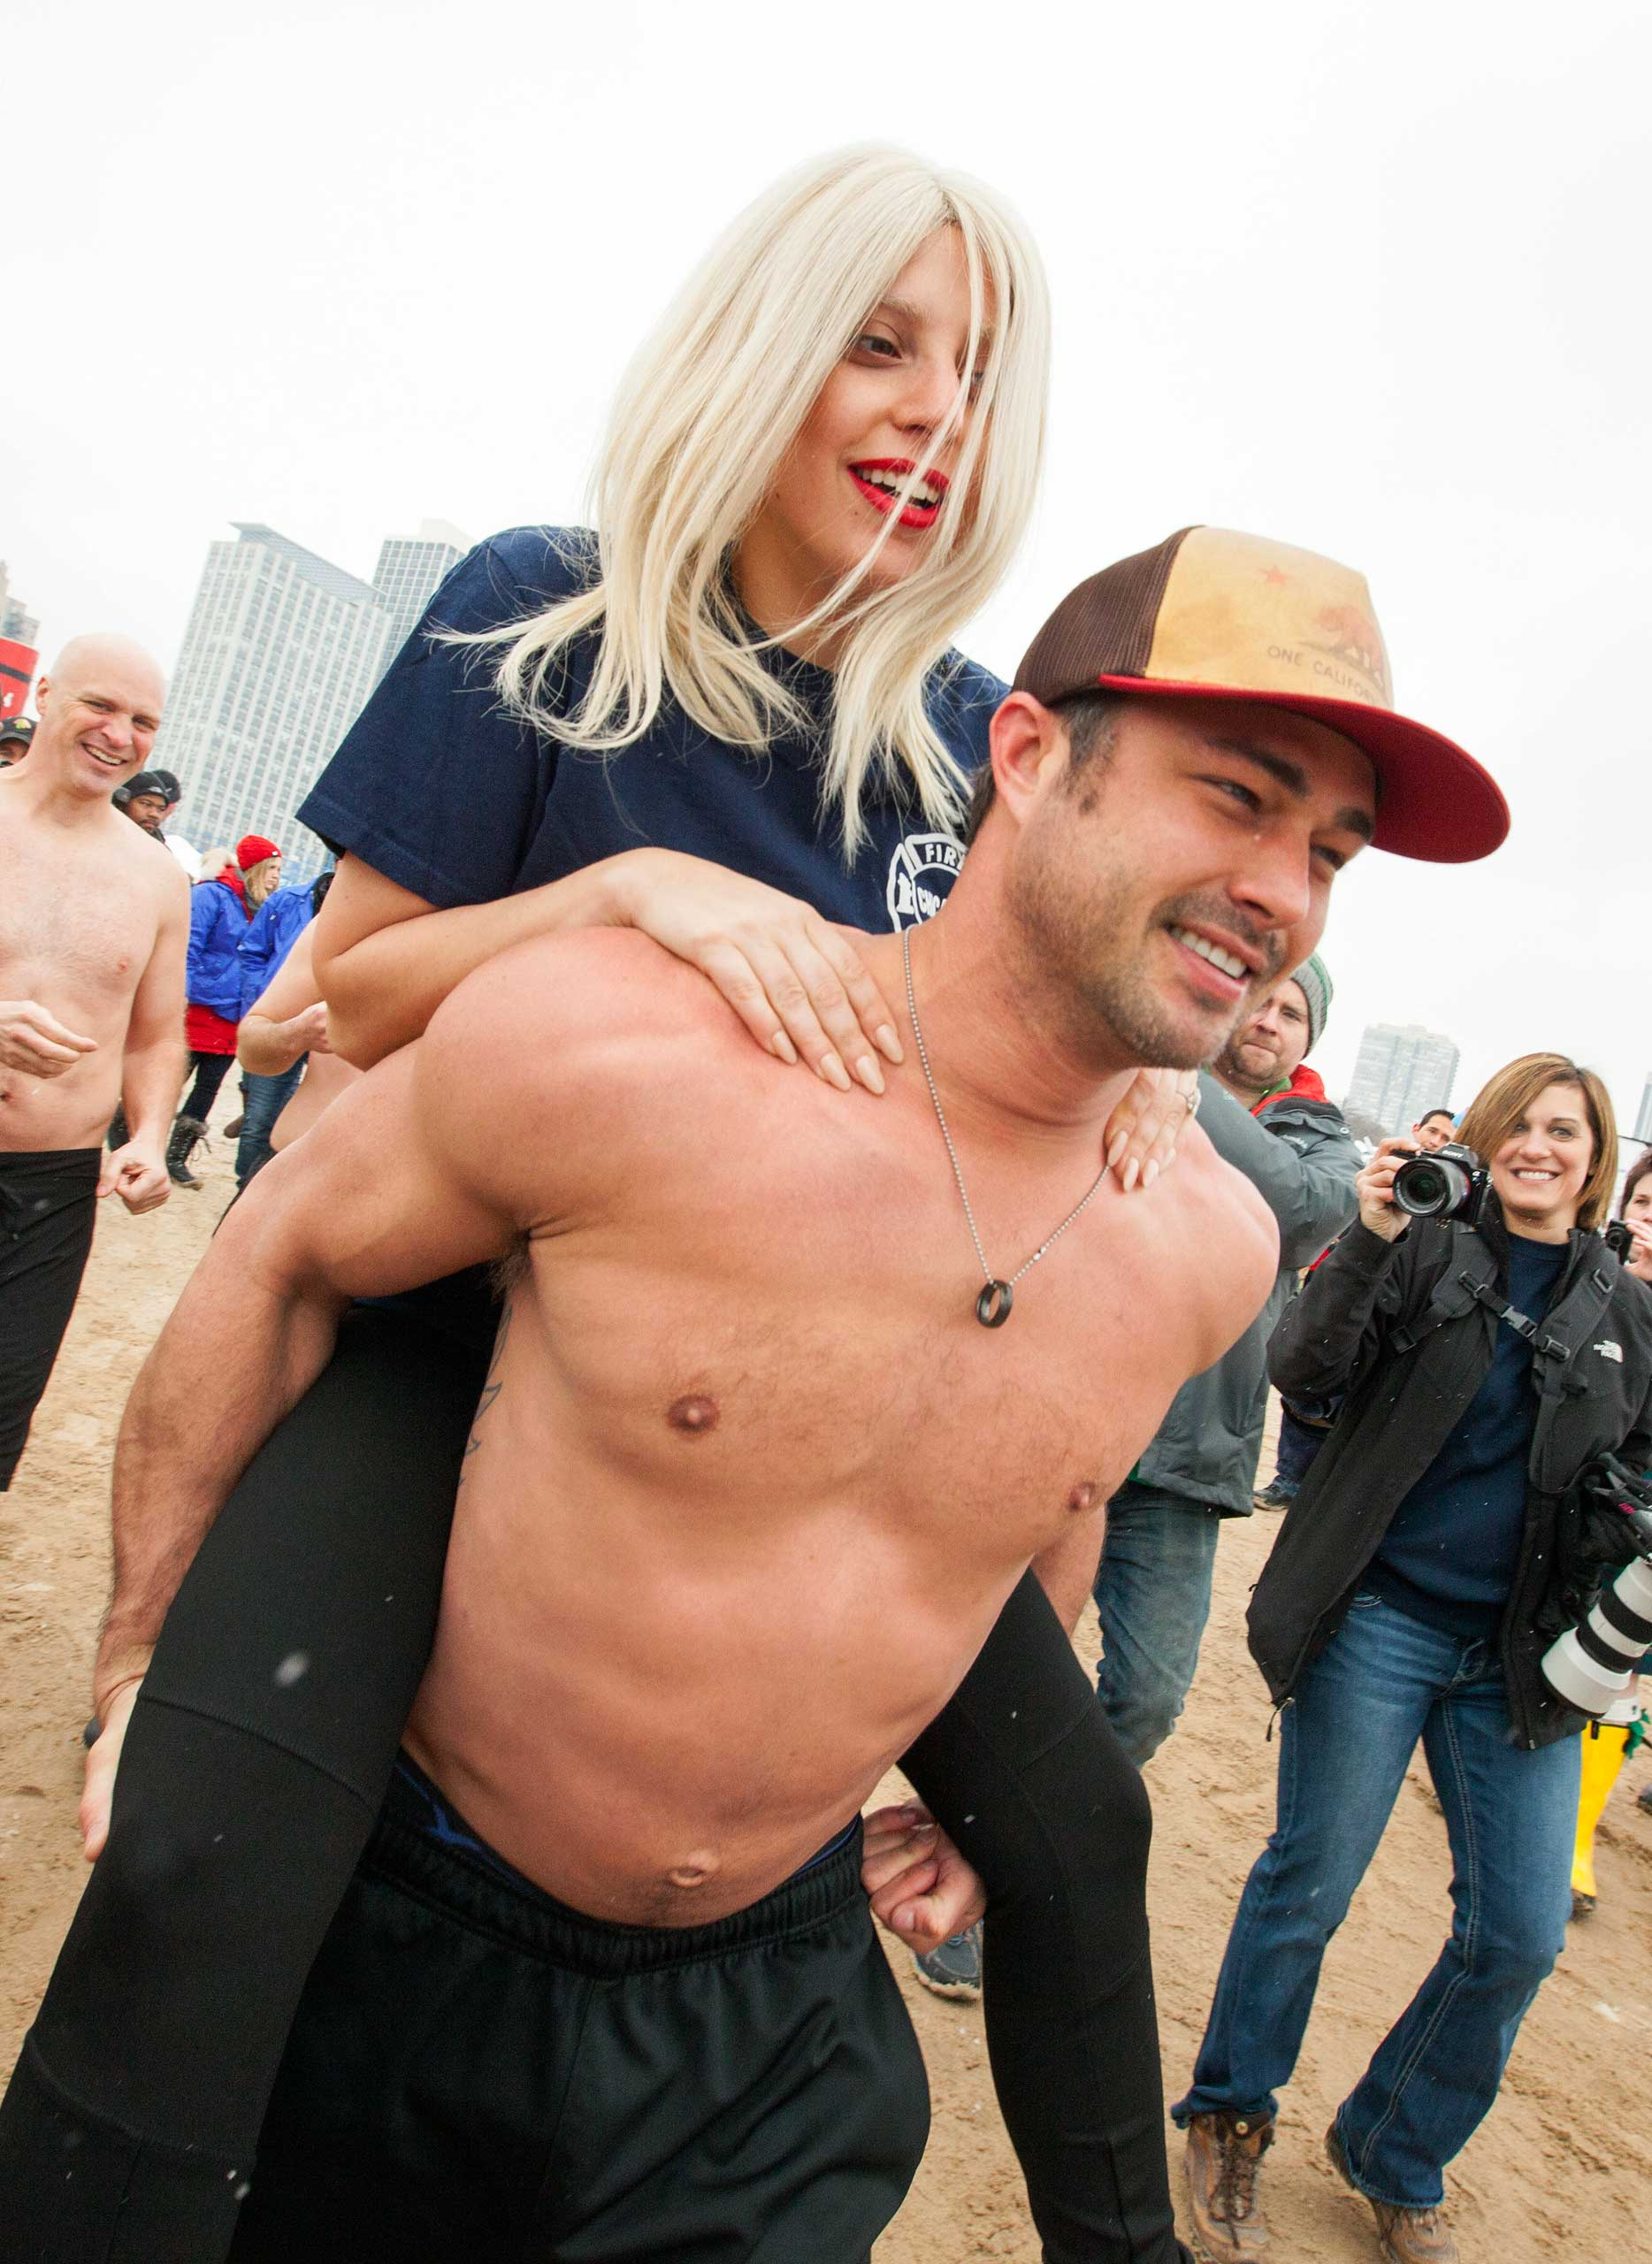 Lady Gaga, top, gets a piggy back ride from her fiancée, Taylor Kinney, as they and members of the  Chicago Fire  cast take part in the Chicago Polar Plunge at North Avenue Beach on March 1, 2015 in Chicago.